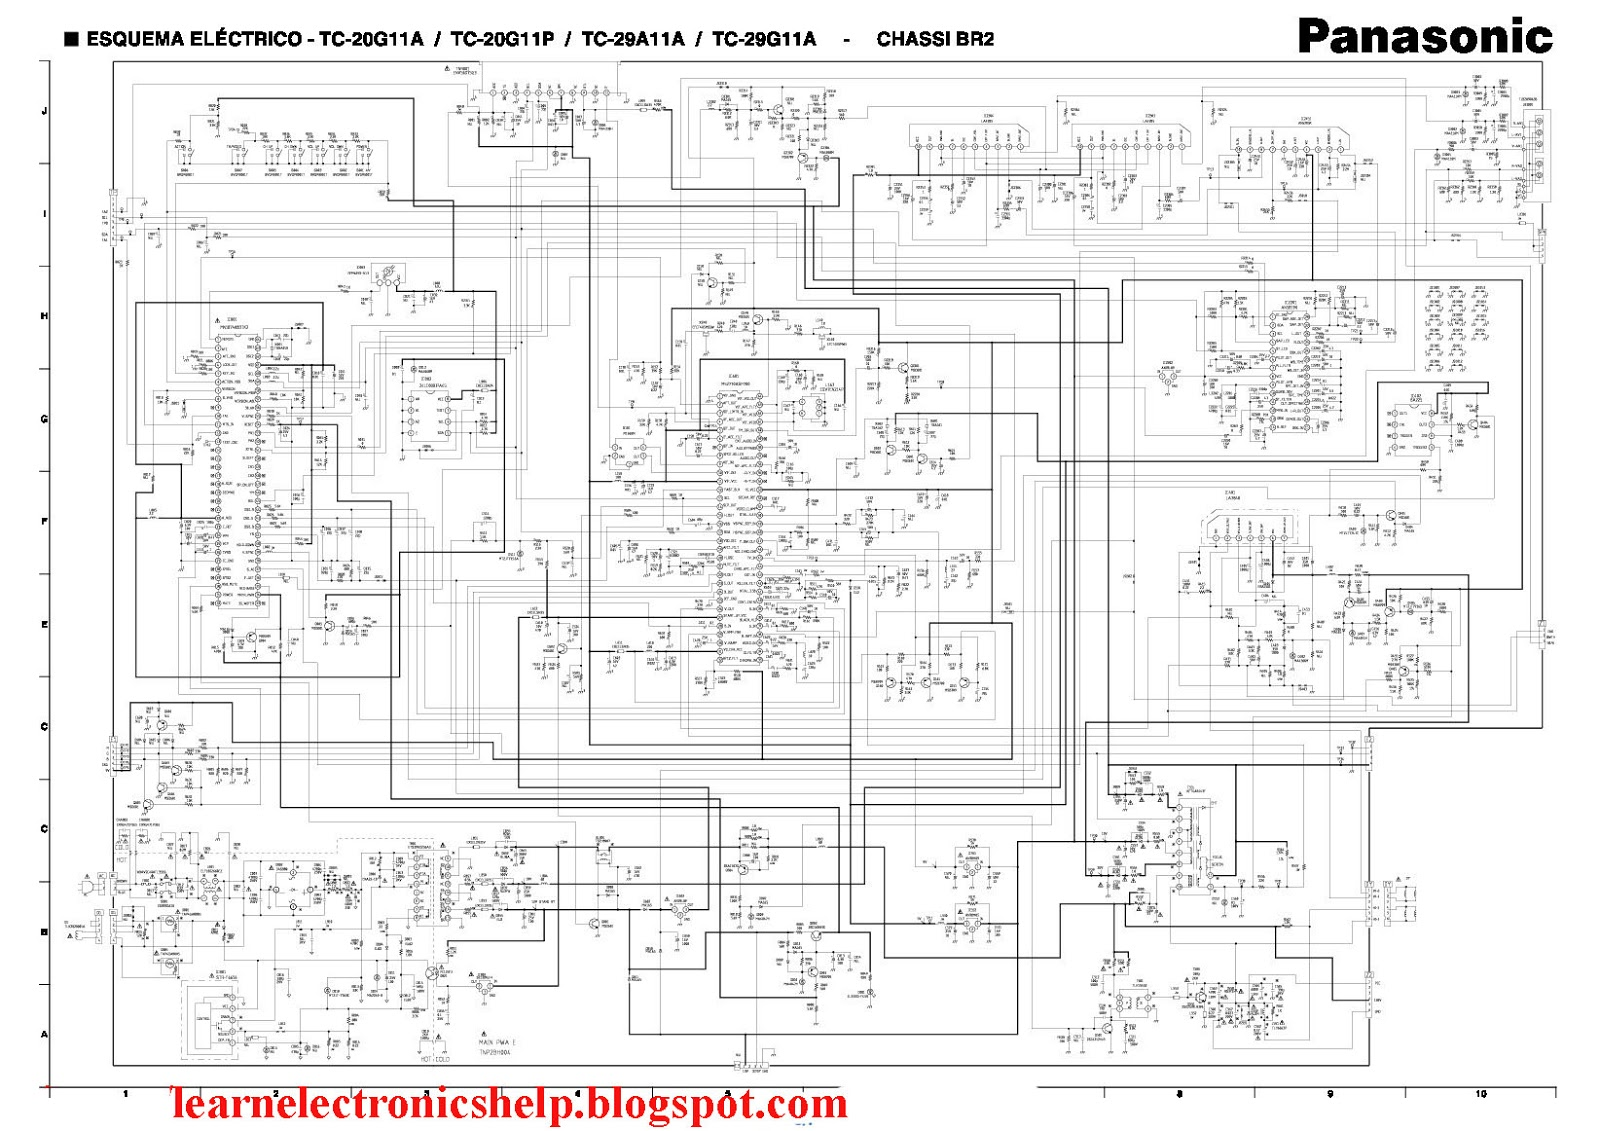 Panasonic Tv Wiring Diagrams - Search For Wiring Diagrams •